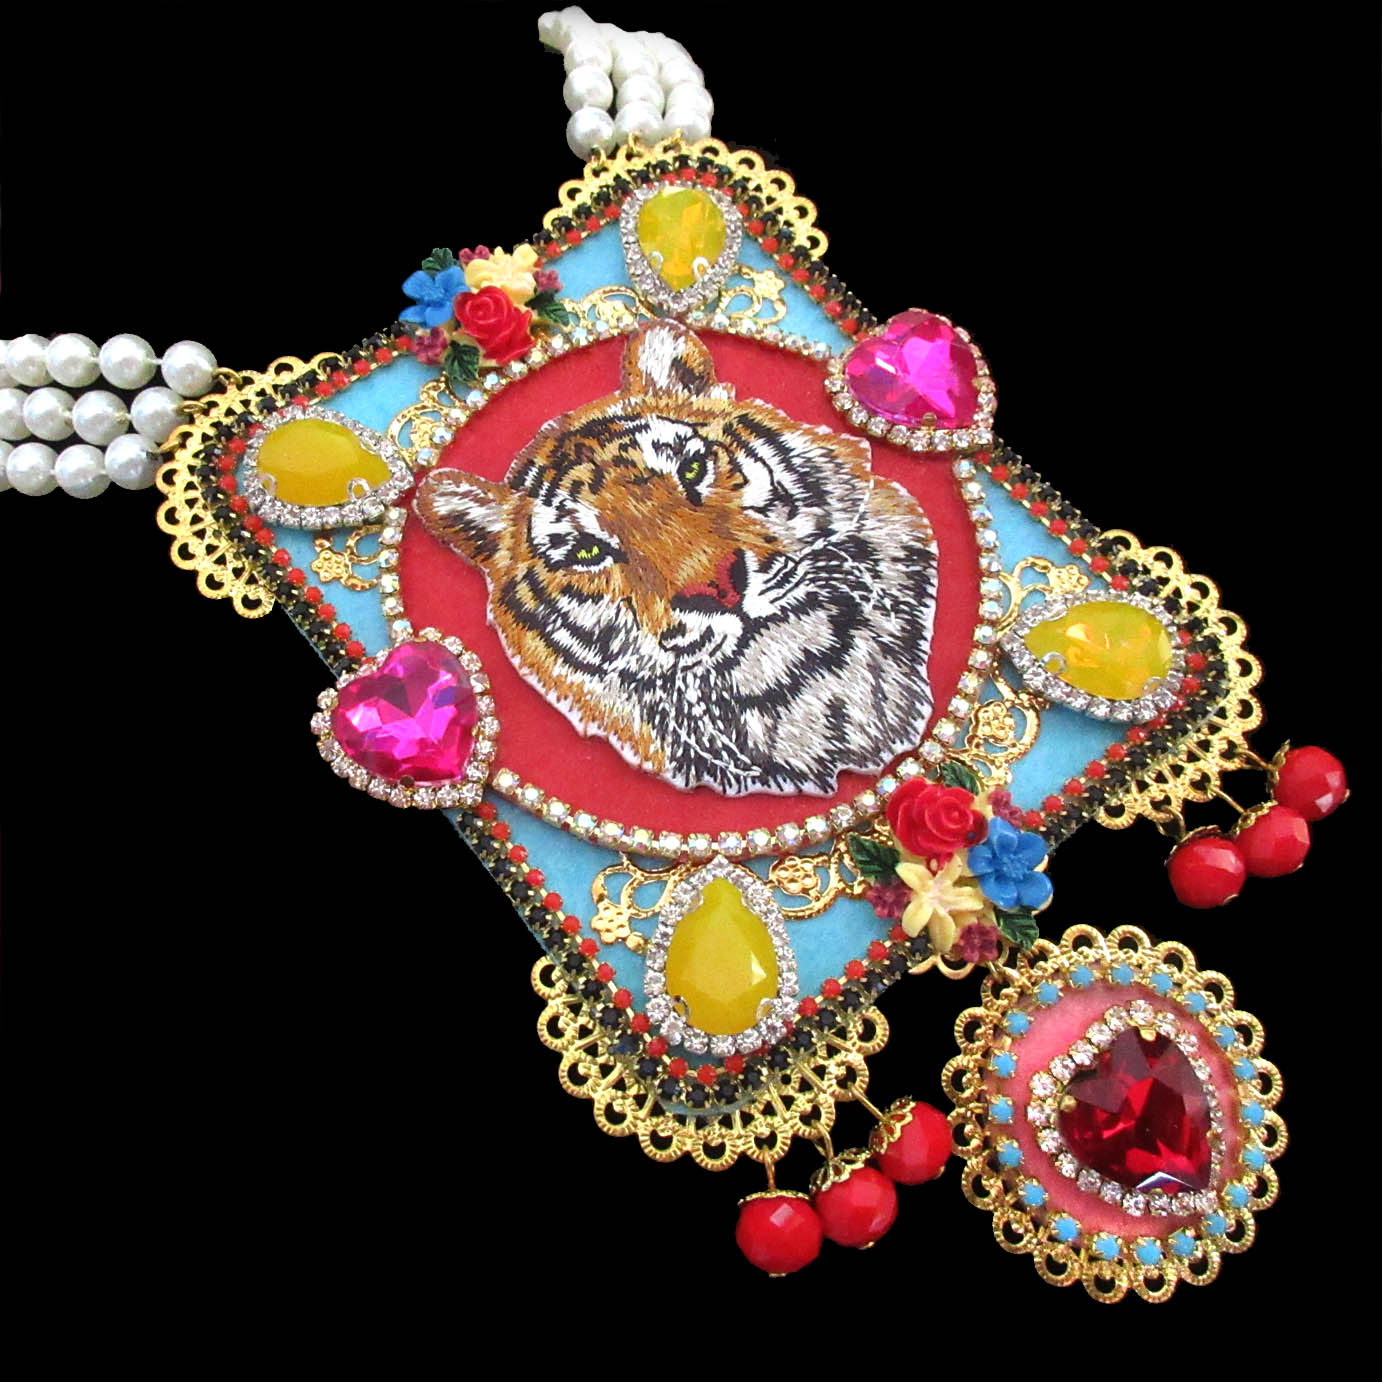 mouchkine jewelry luxury tiger necklace, ornate with an embroided tiger, pink glass hearts, yellow chipped citrine stones, and delicate red glass pearls.